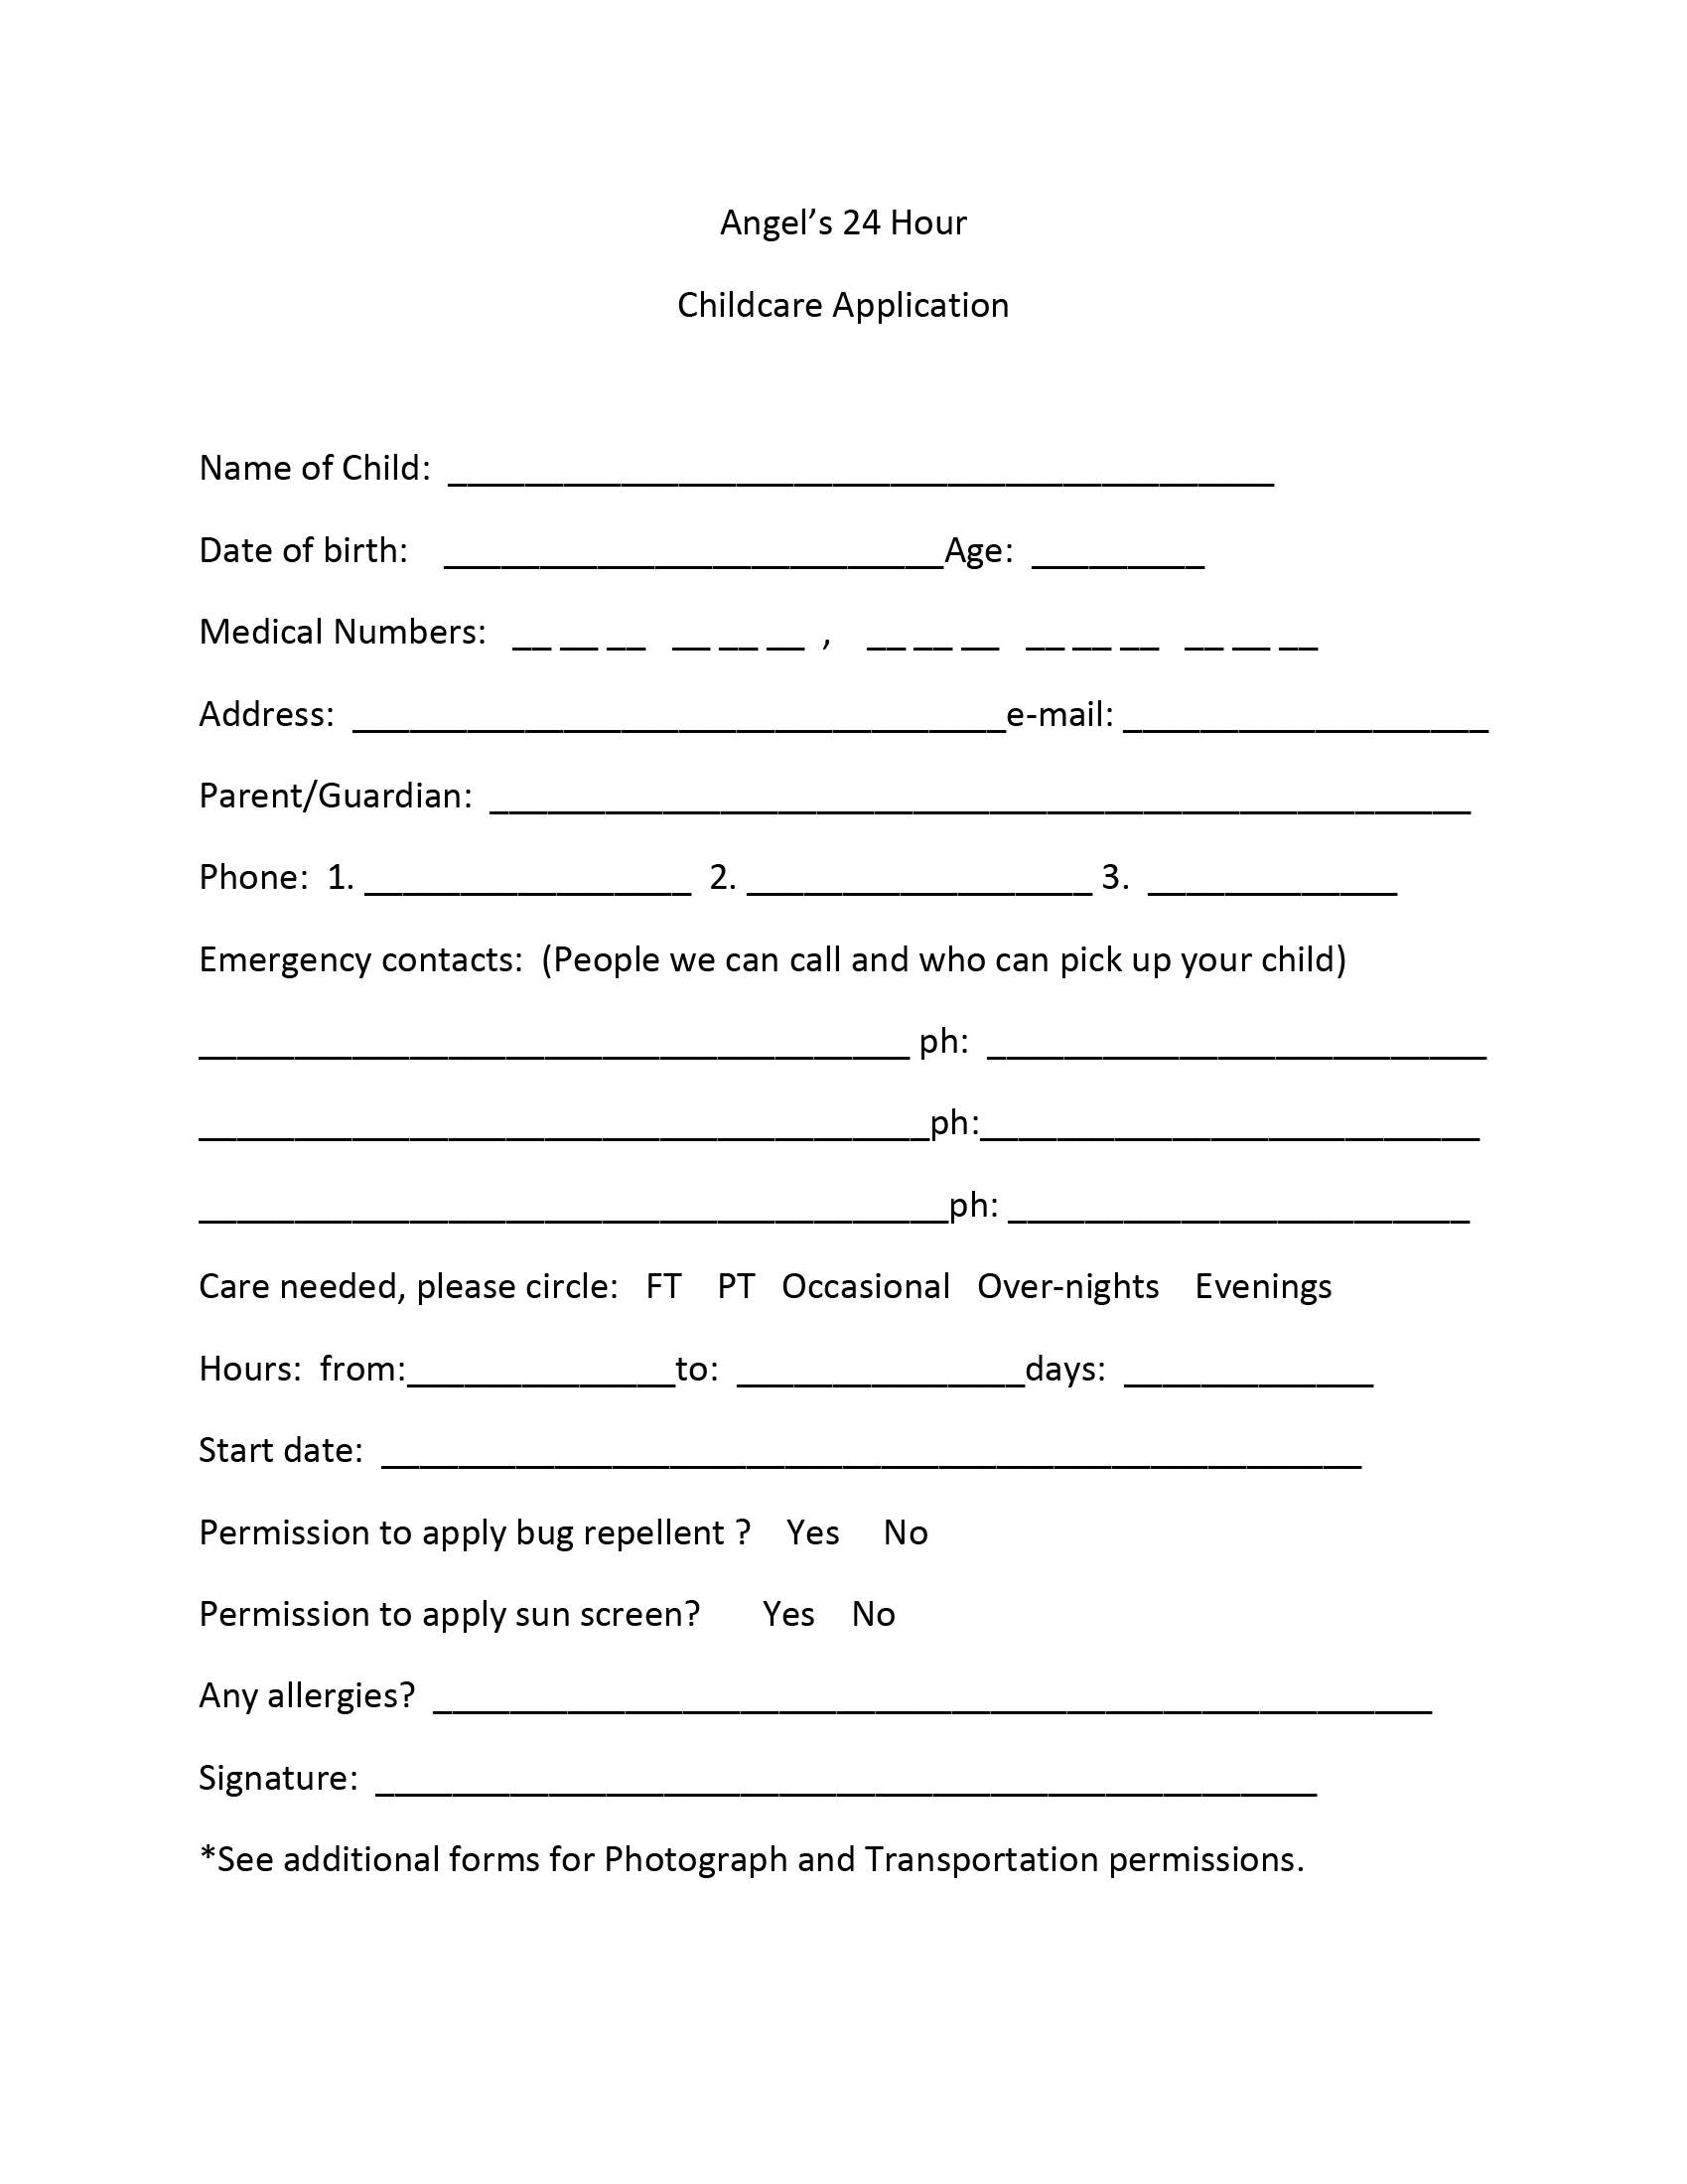 Childcare Application Form Print Childcare Application Form Images ...